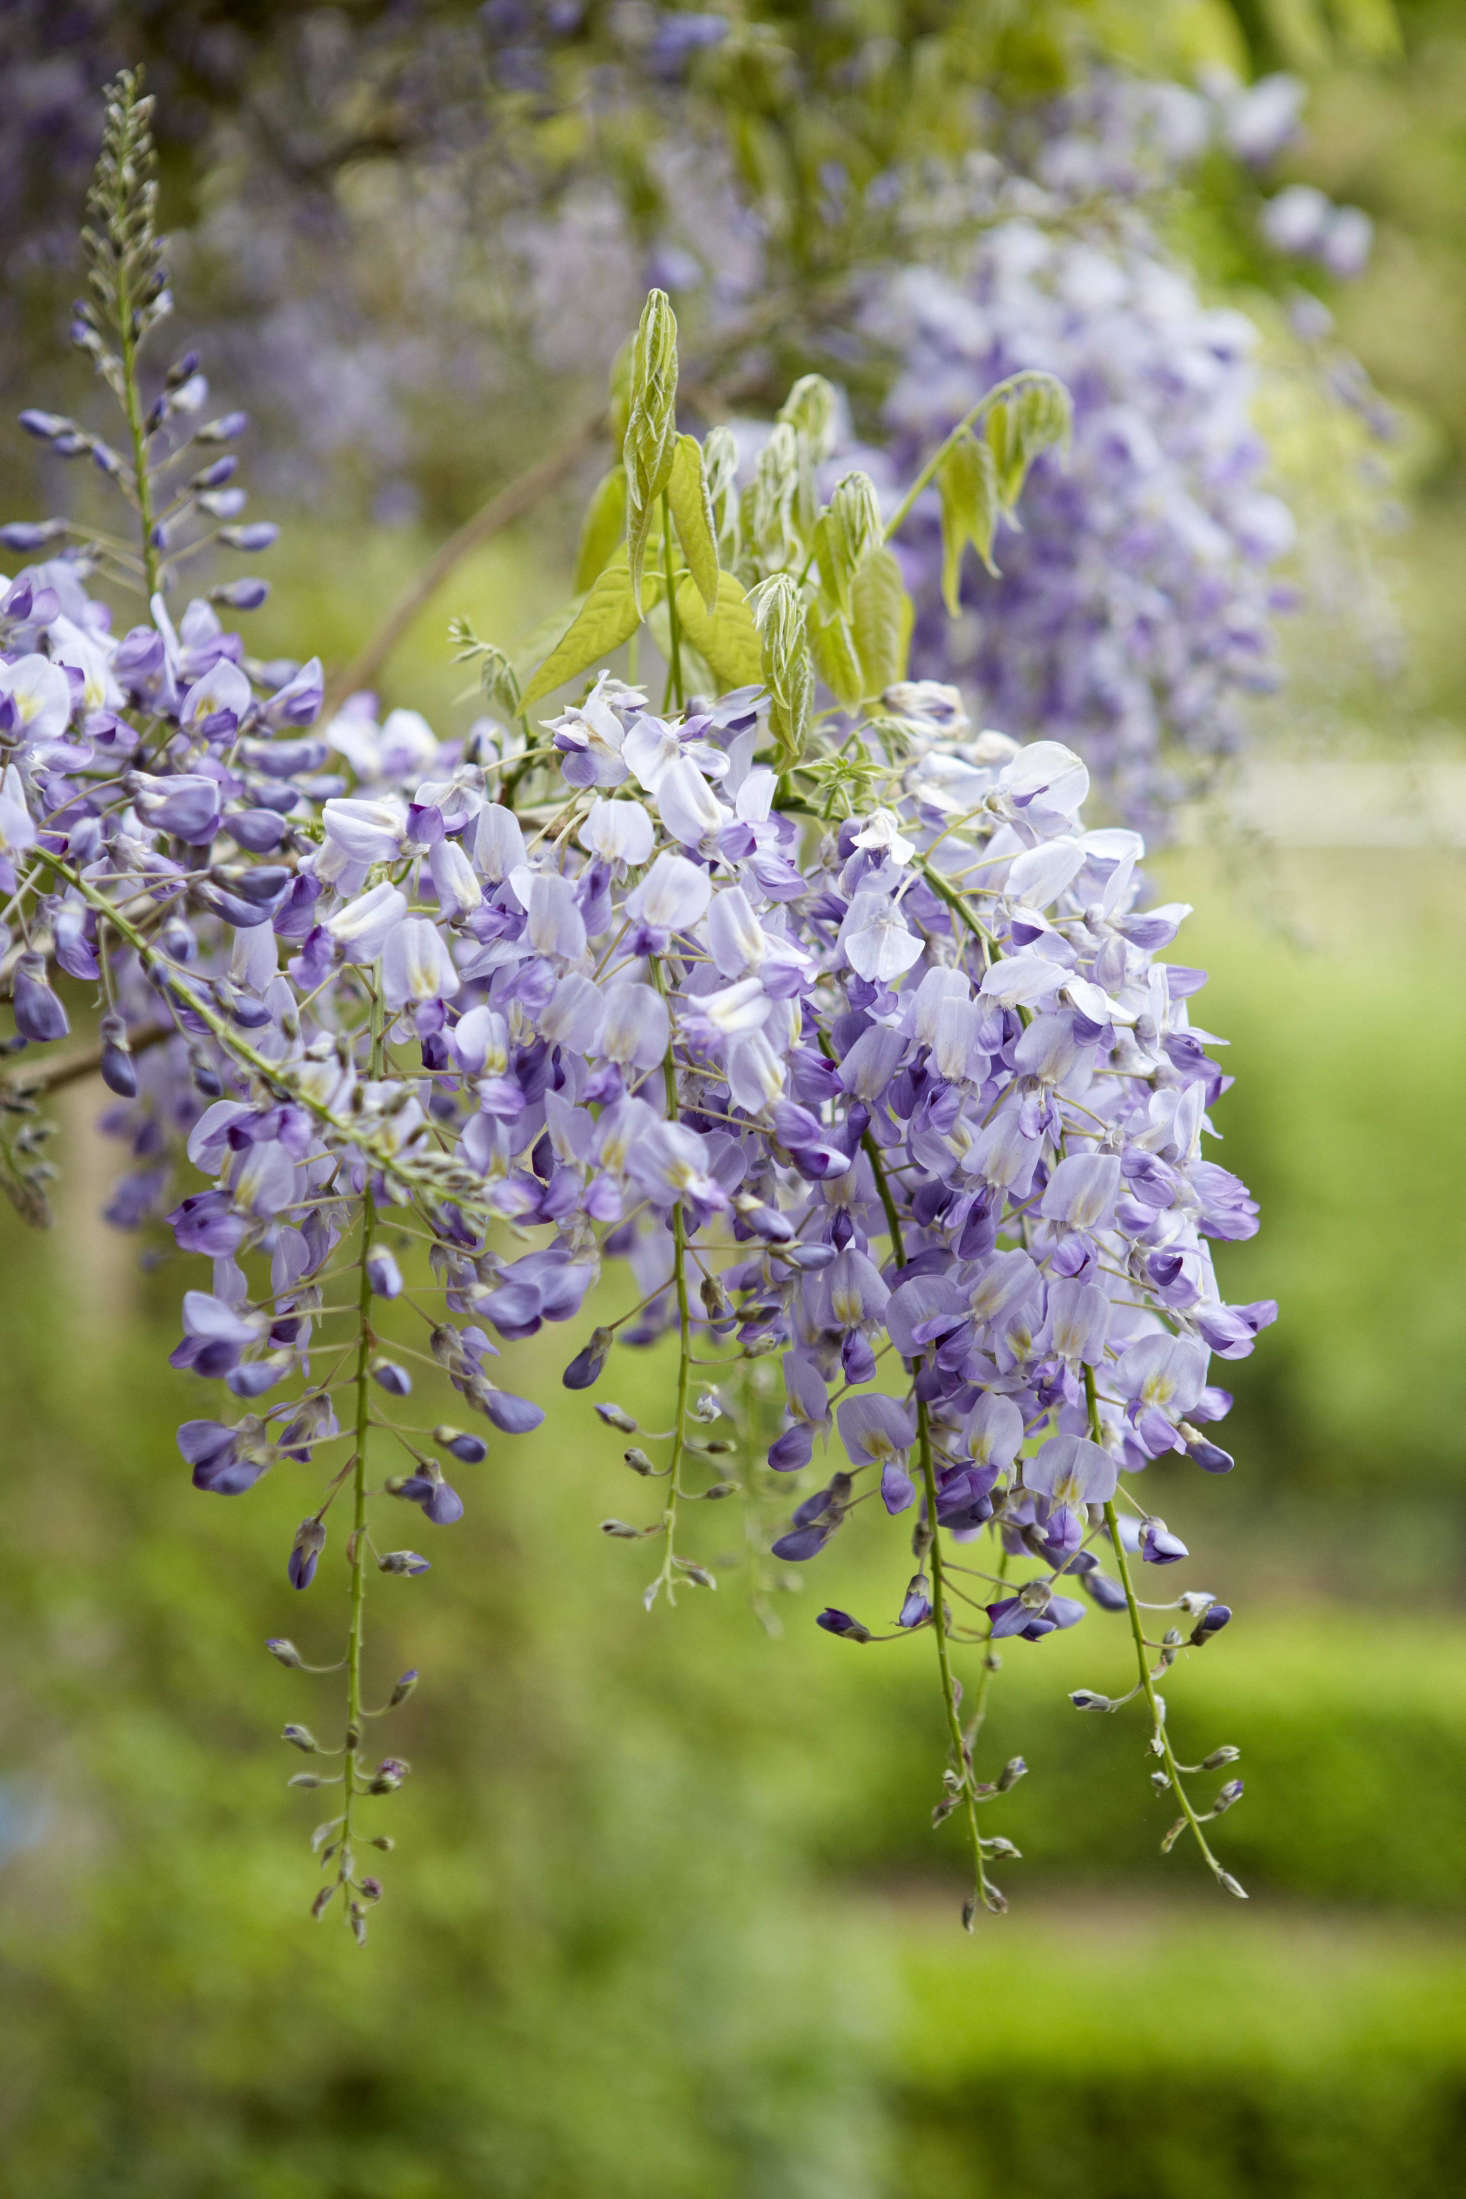 Wisteria wants to bloom when it feels increased warmth from direct sunlight and when there is nothing above to climb.